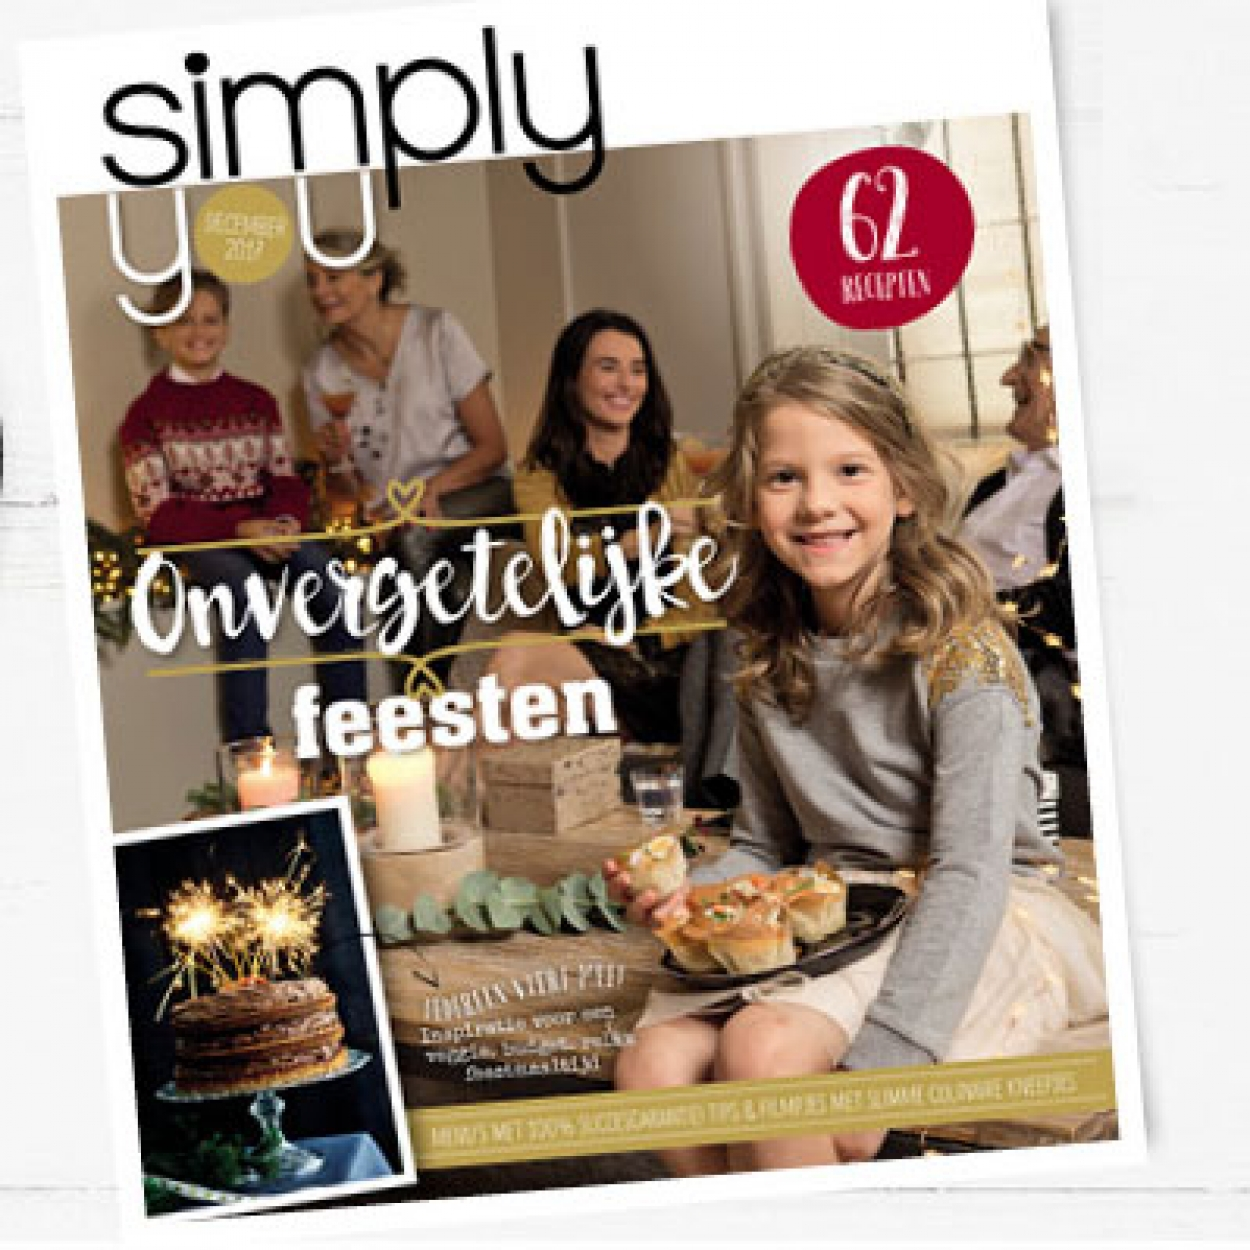 Simply you magazine - Carrefour